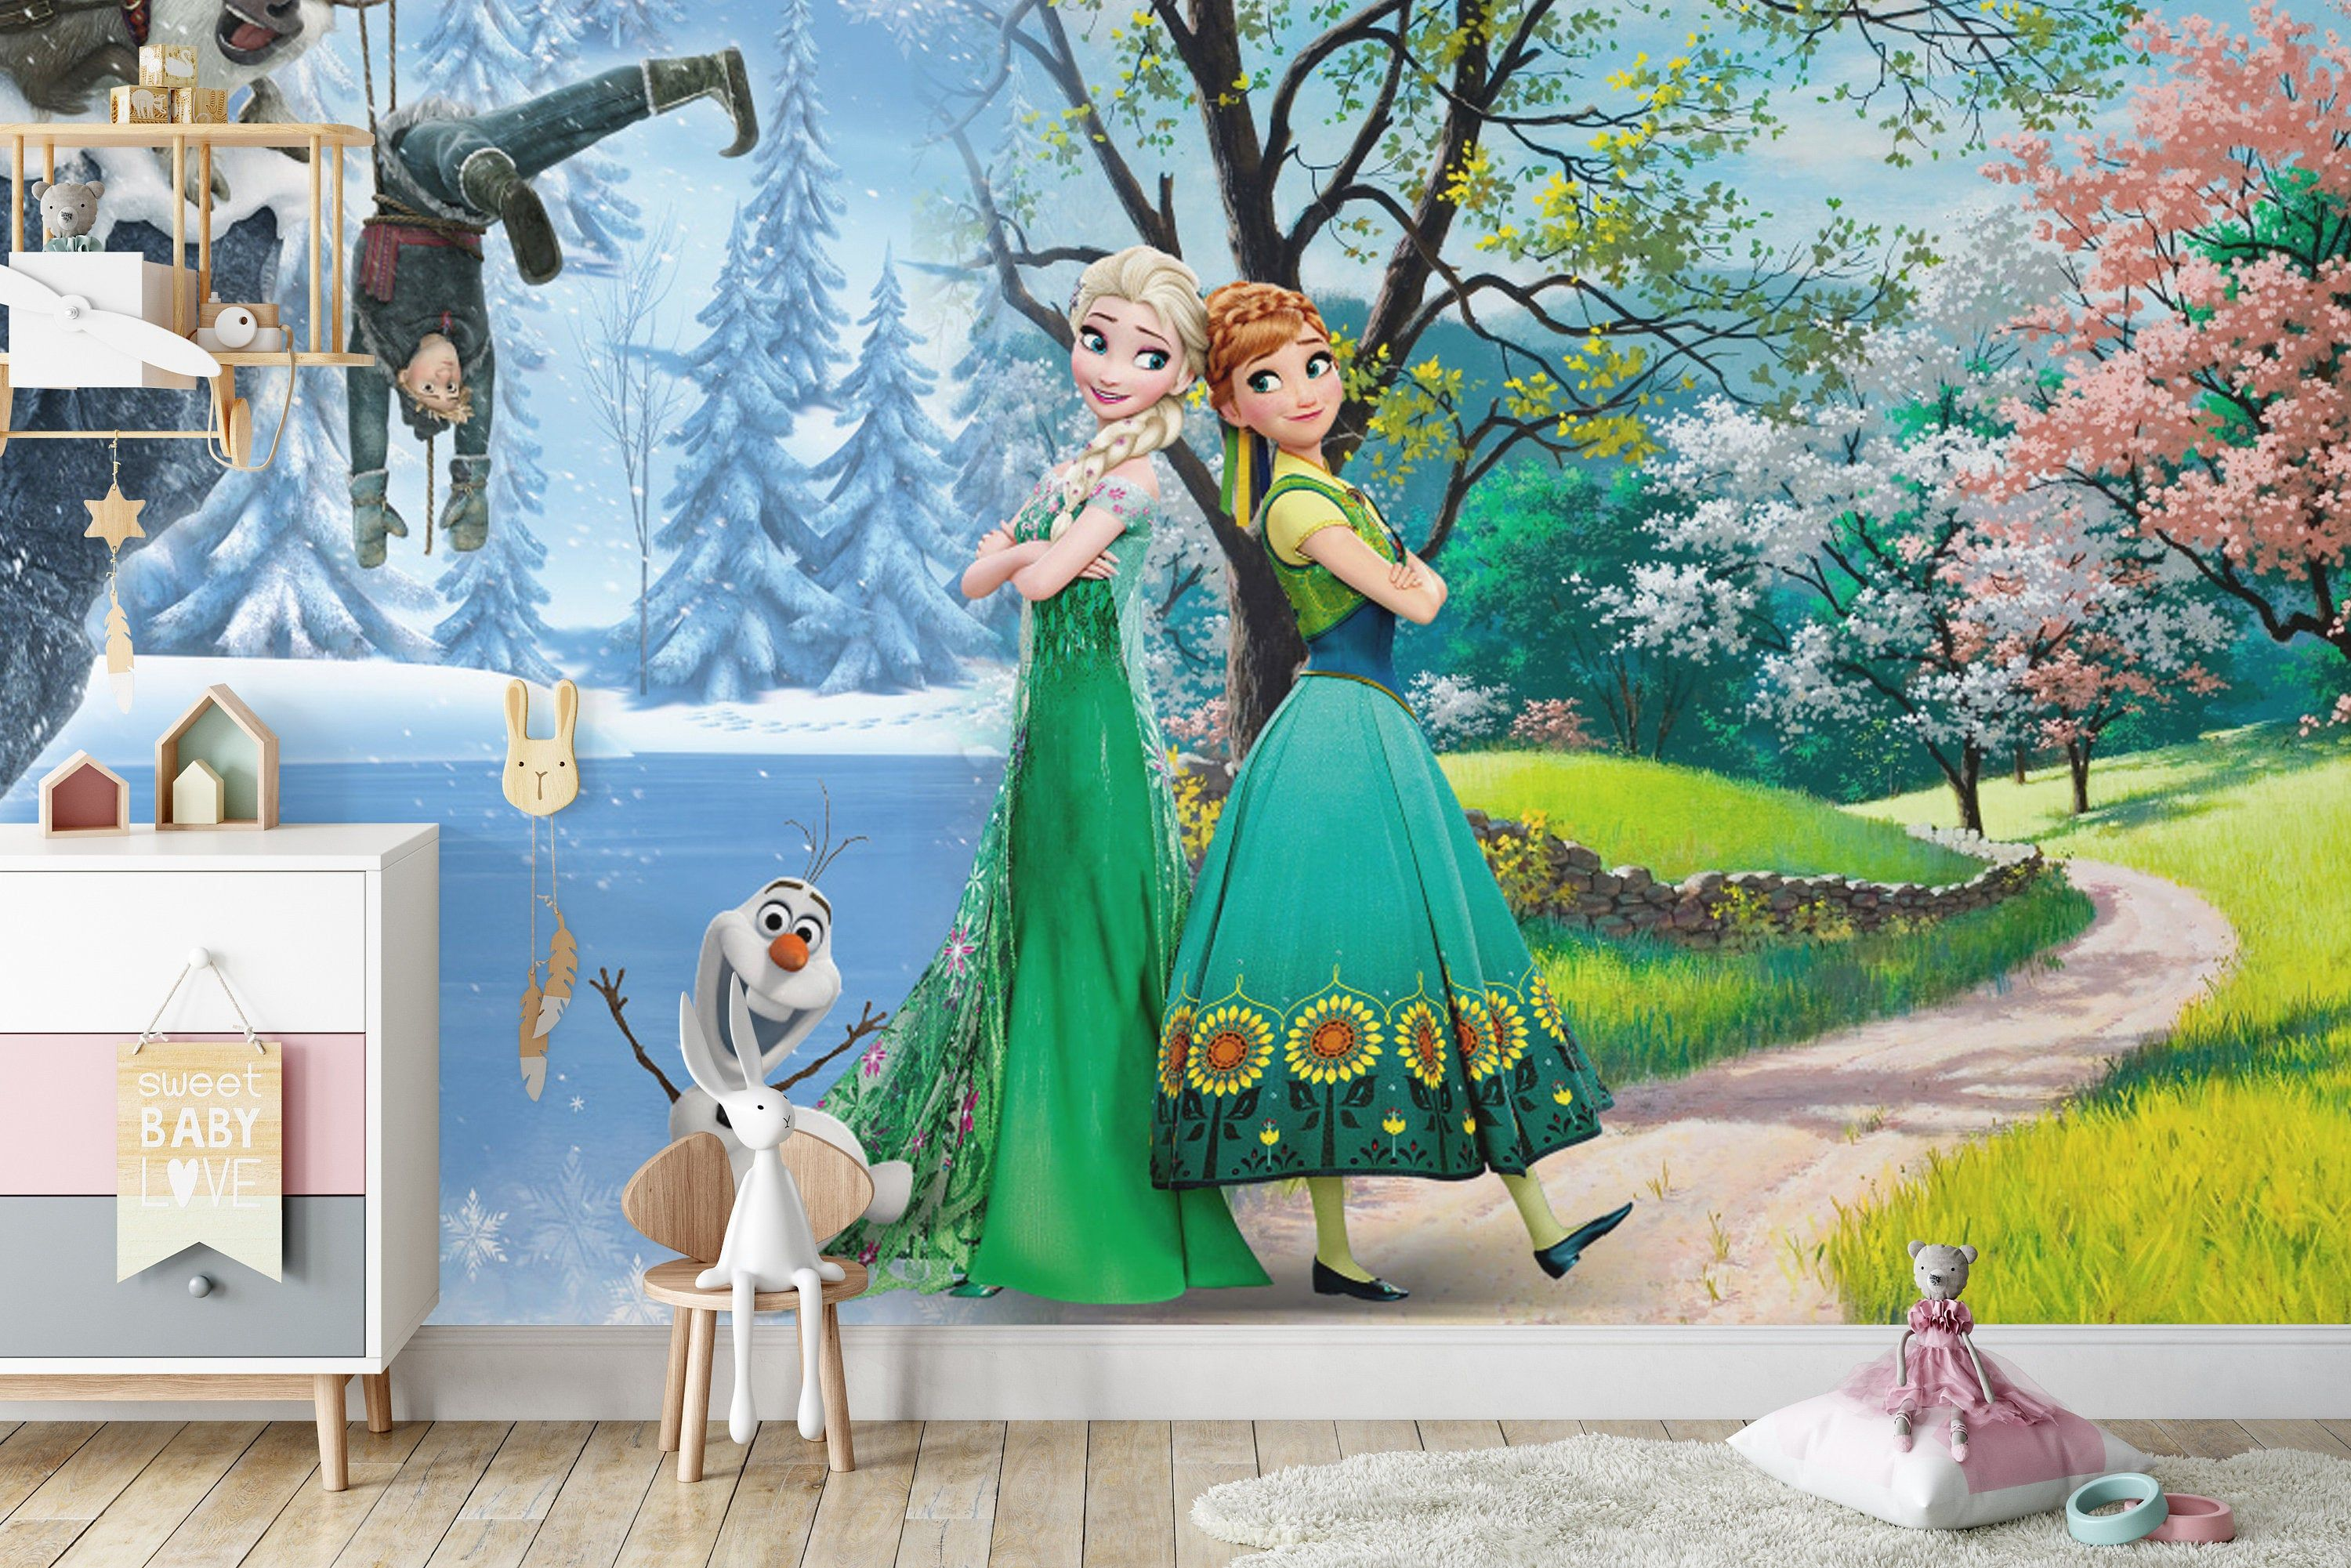 3 FROZEN Pictures Elsa Olaf Anna Set of 3 Wall Hangings Girls Bedroom Decor